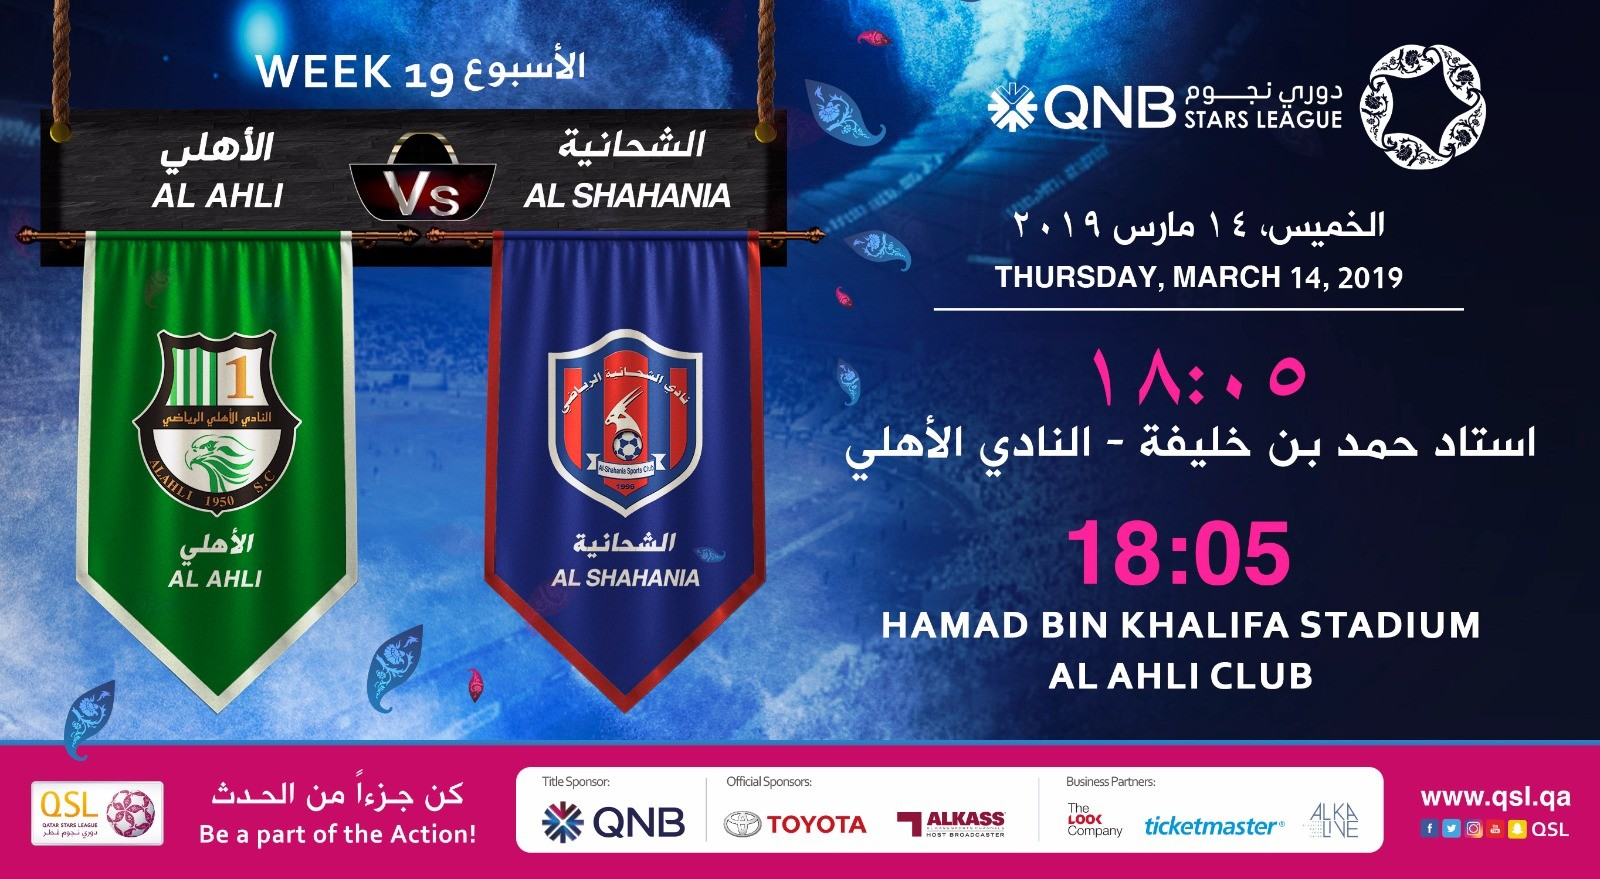 QNB Stars League Week 19 — Al Ahli vs Al Shahania